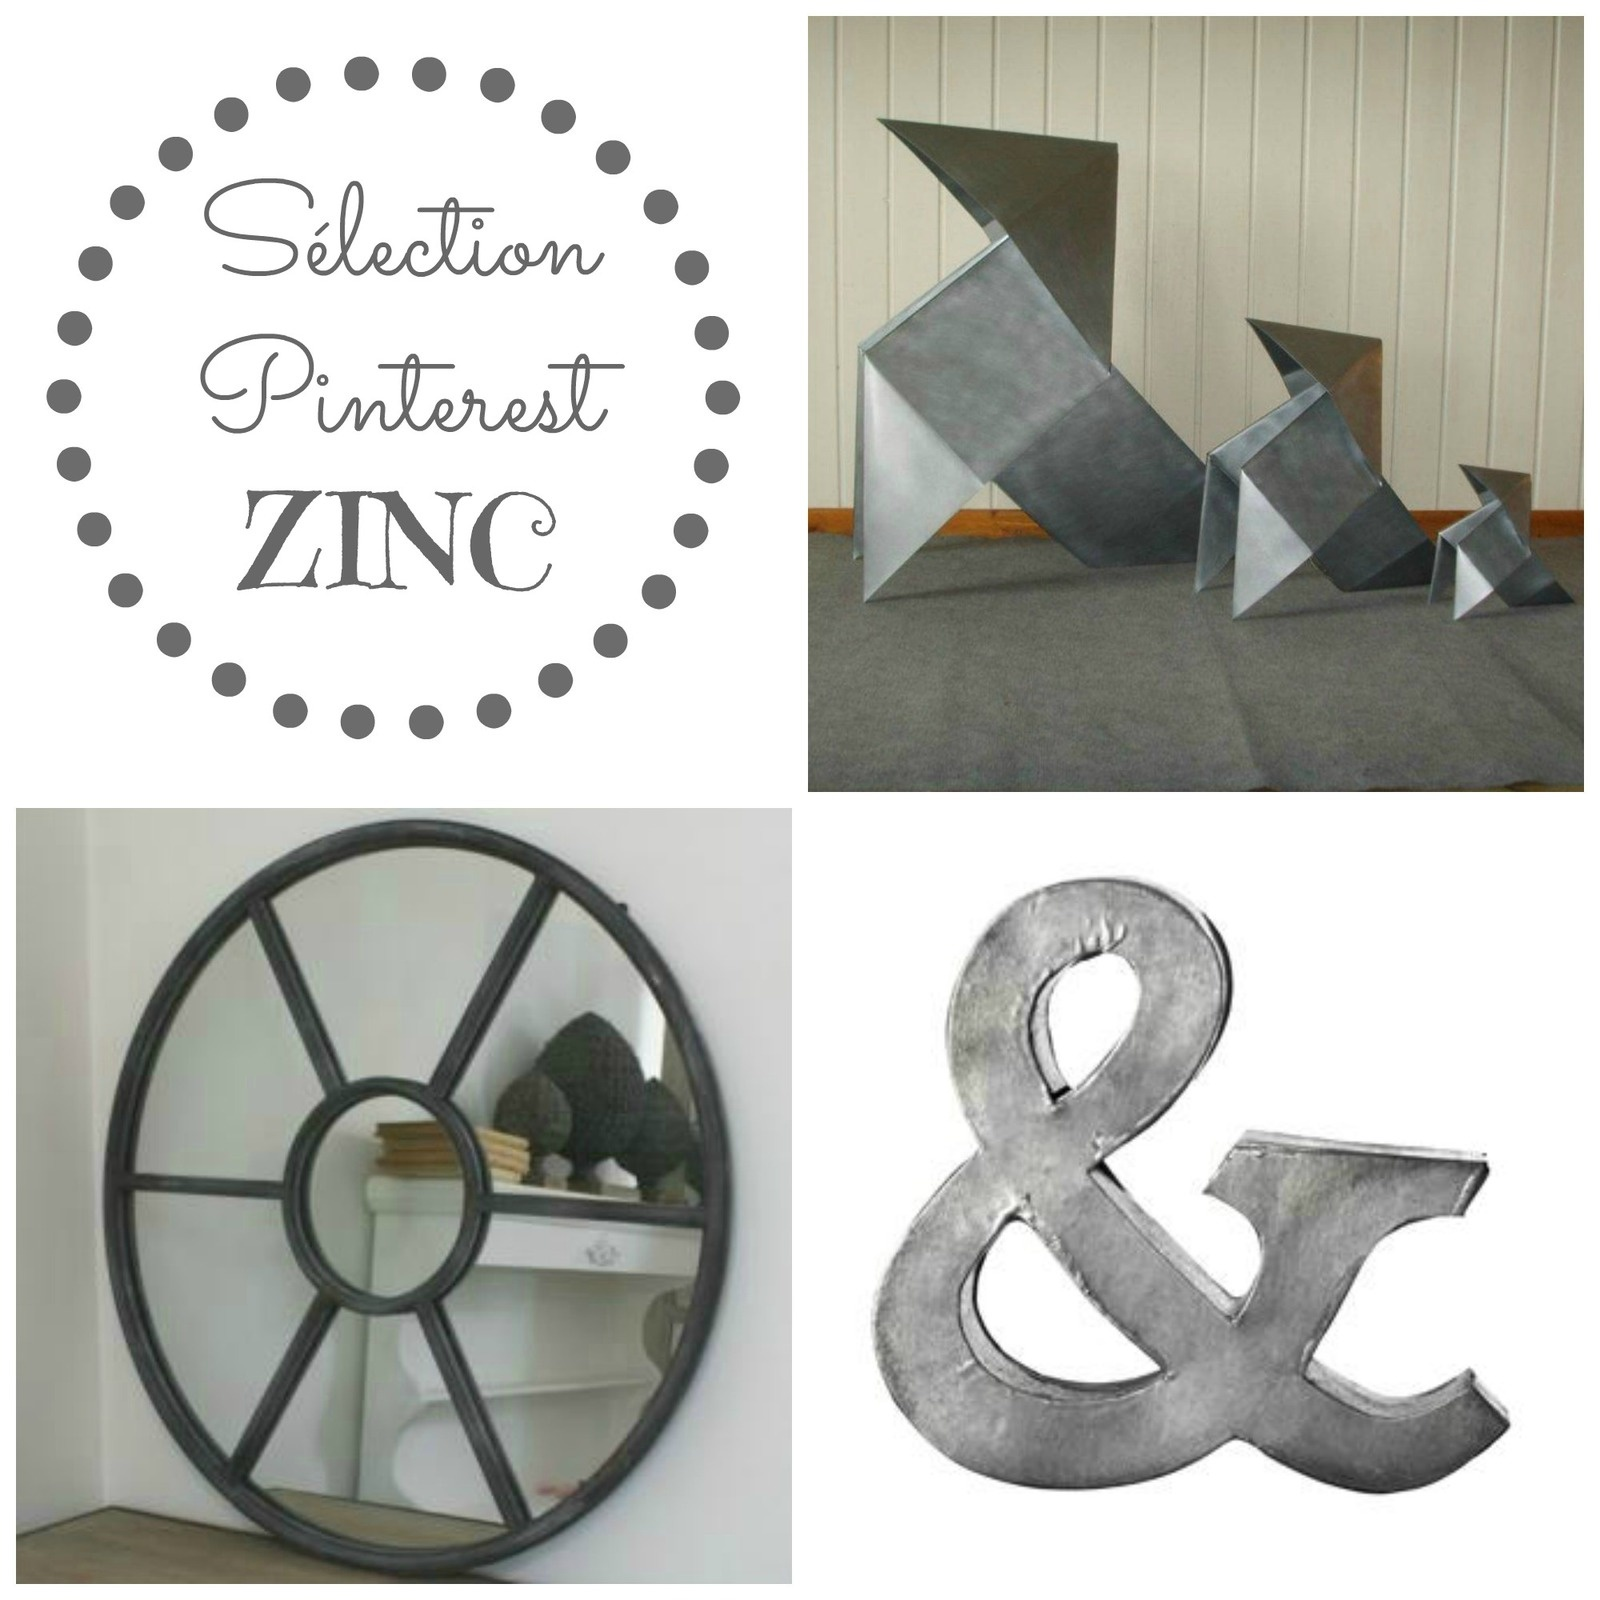 SELECTION PINTEREST #8 (zinc)